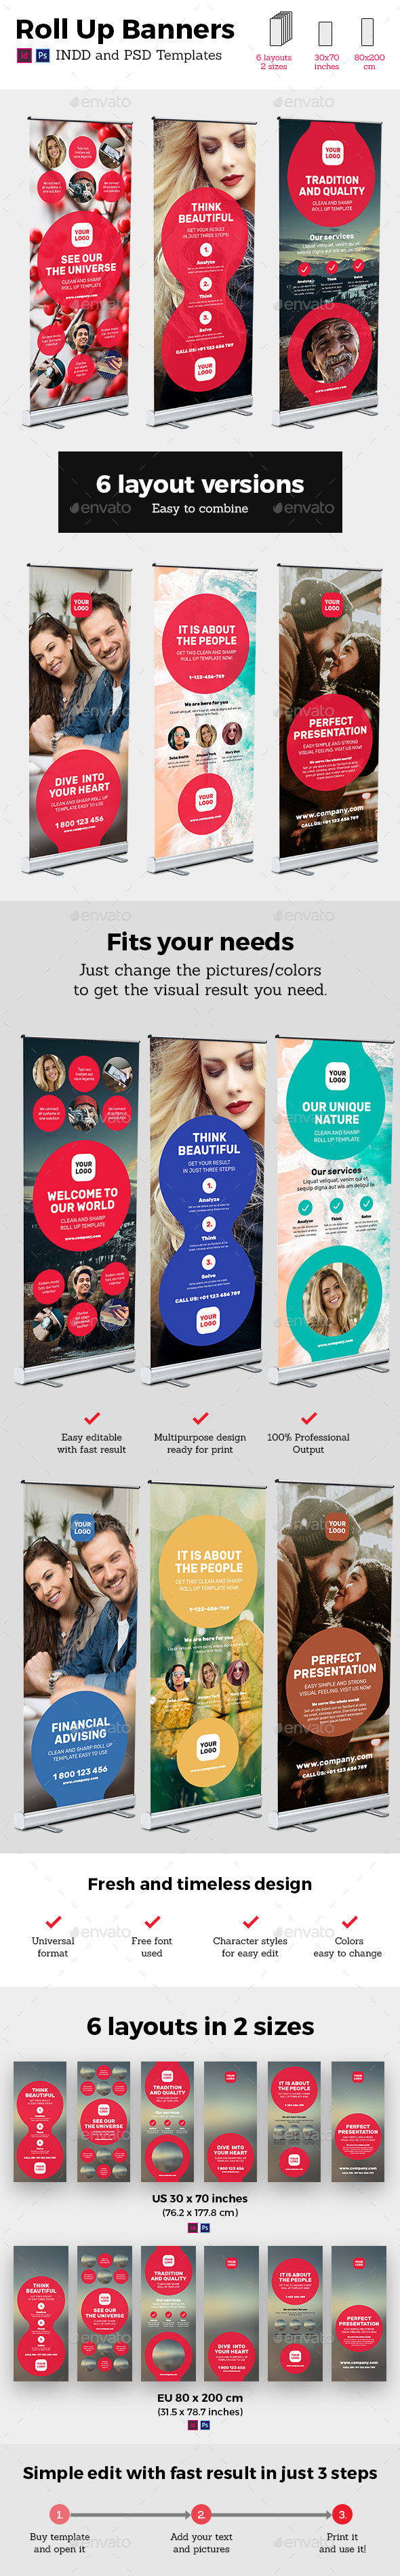 Circle Style Rollup Stand Banner Display 6x Indesign and Photoshop Template - Signage Print Templates